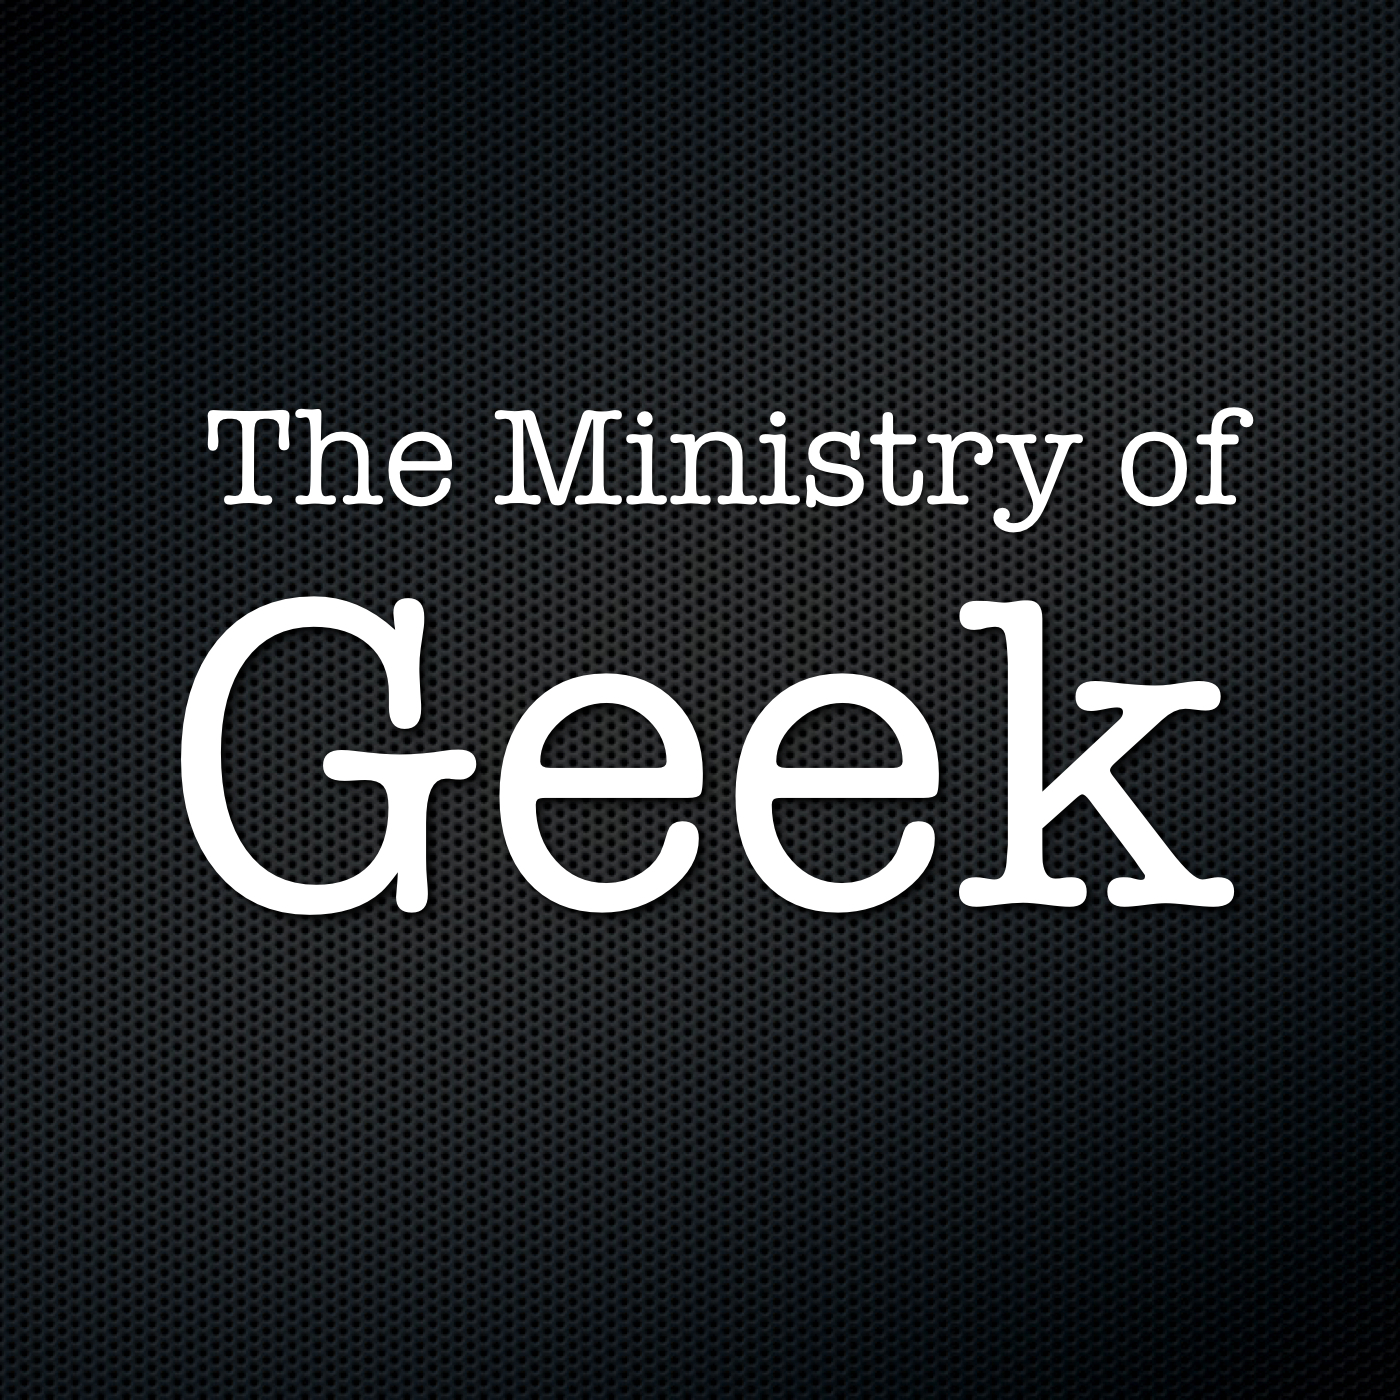 The Ministry of Geek